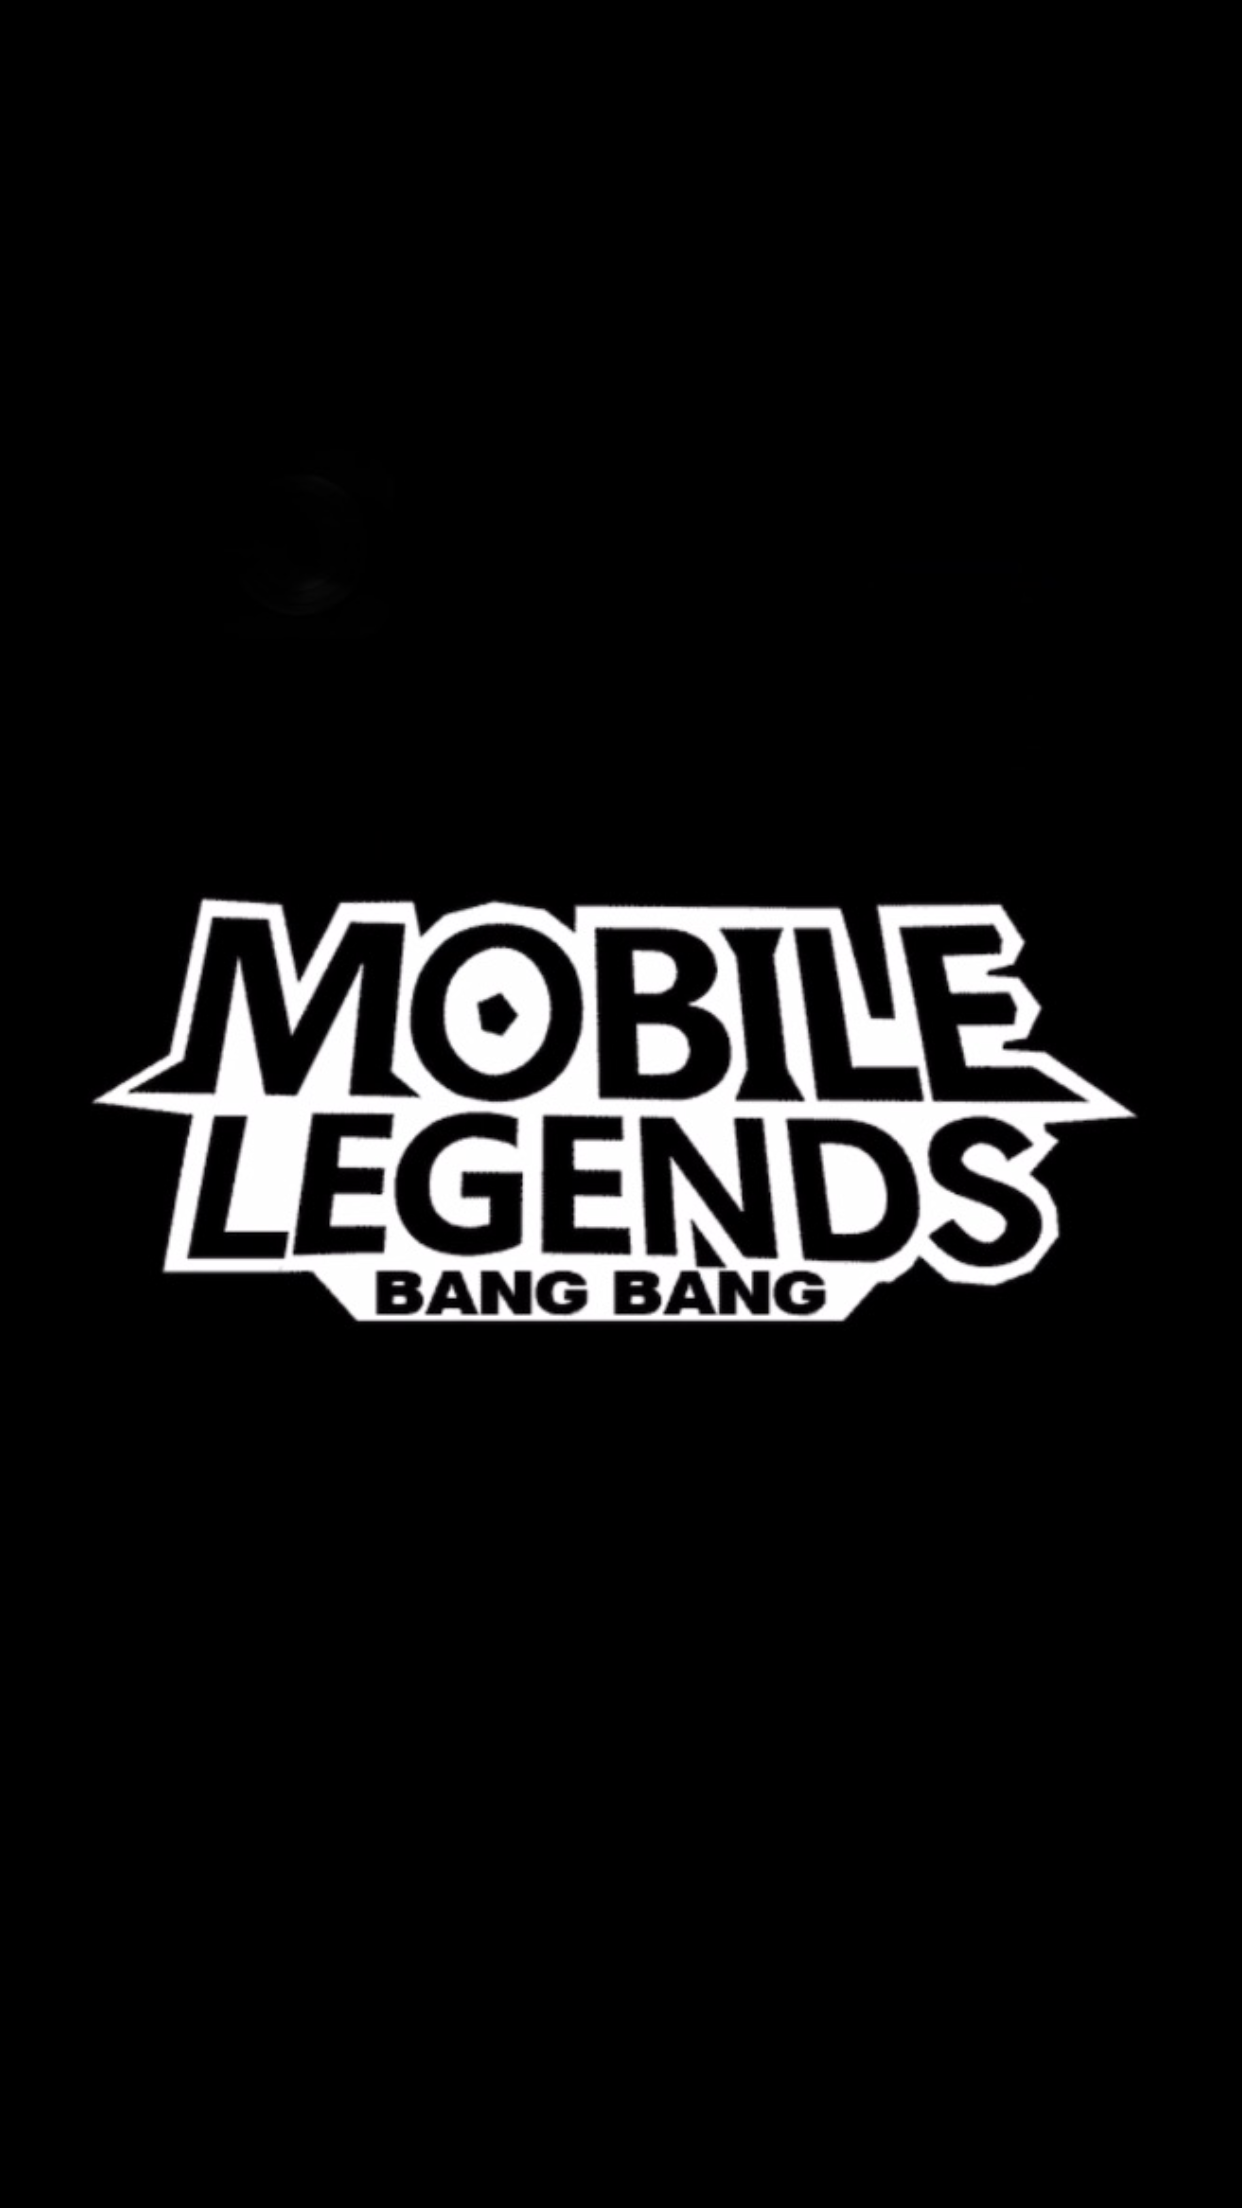 Pin By Wijee Calungcaguin On Mobile Legends Bang Bang Mobile